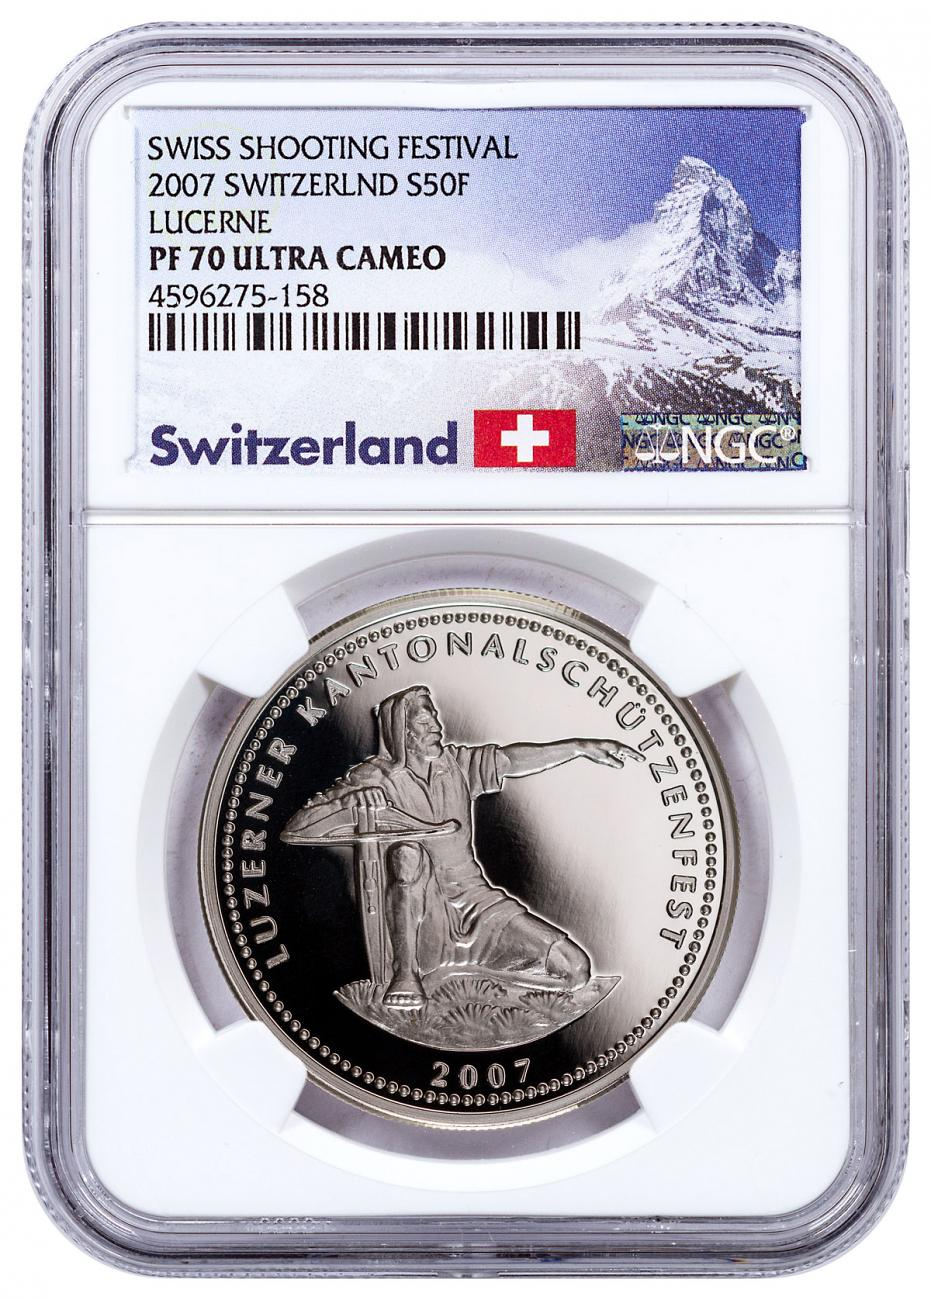 2007 Switzerland Shooting Festival Thaler - Lucerne Silver Proof Fr.50 NGC PF70 UC Exclusive Switzerland Label